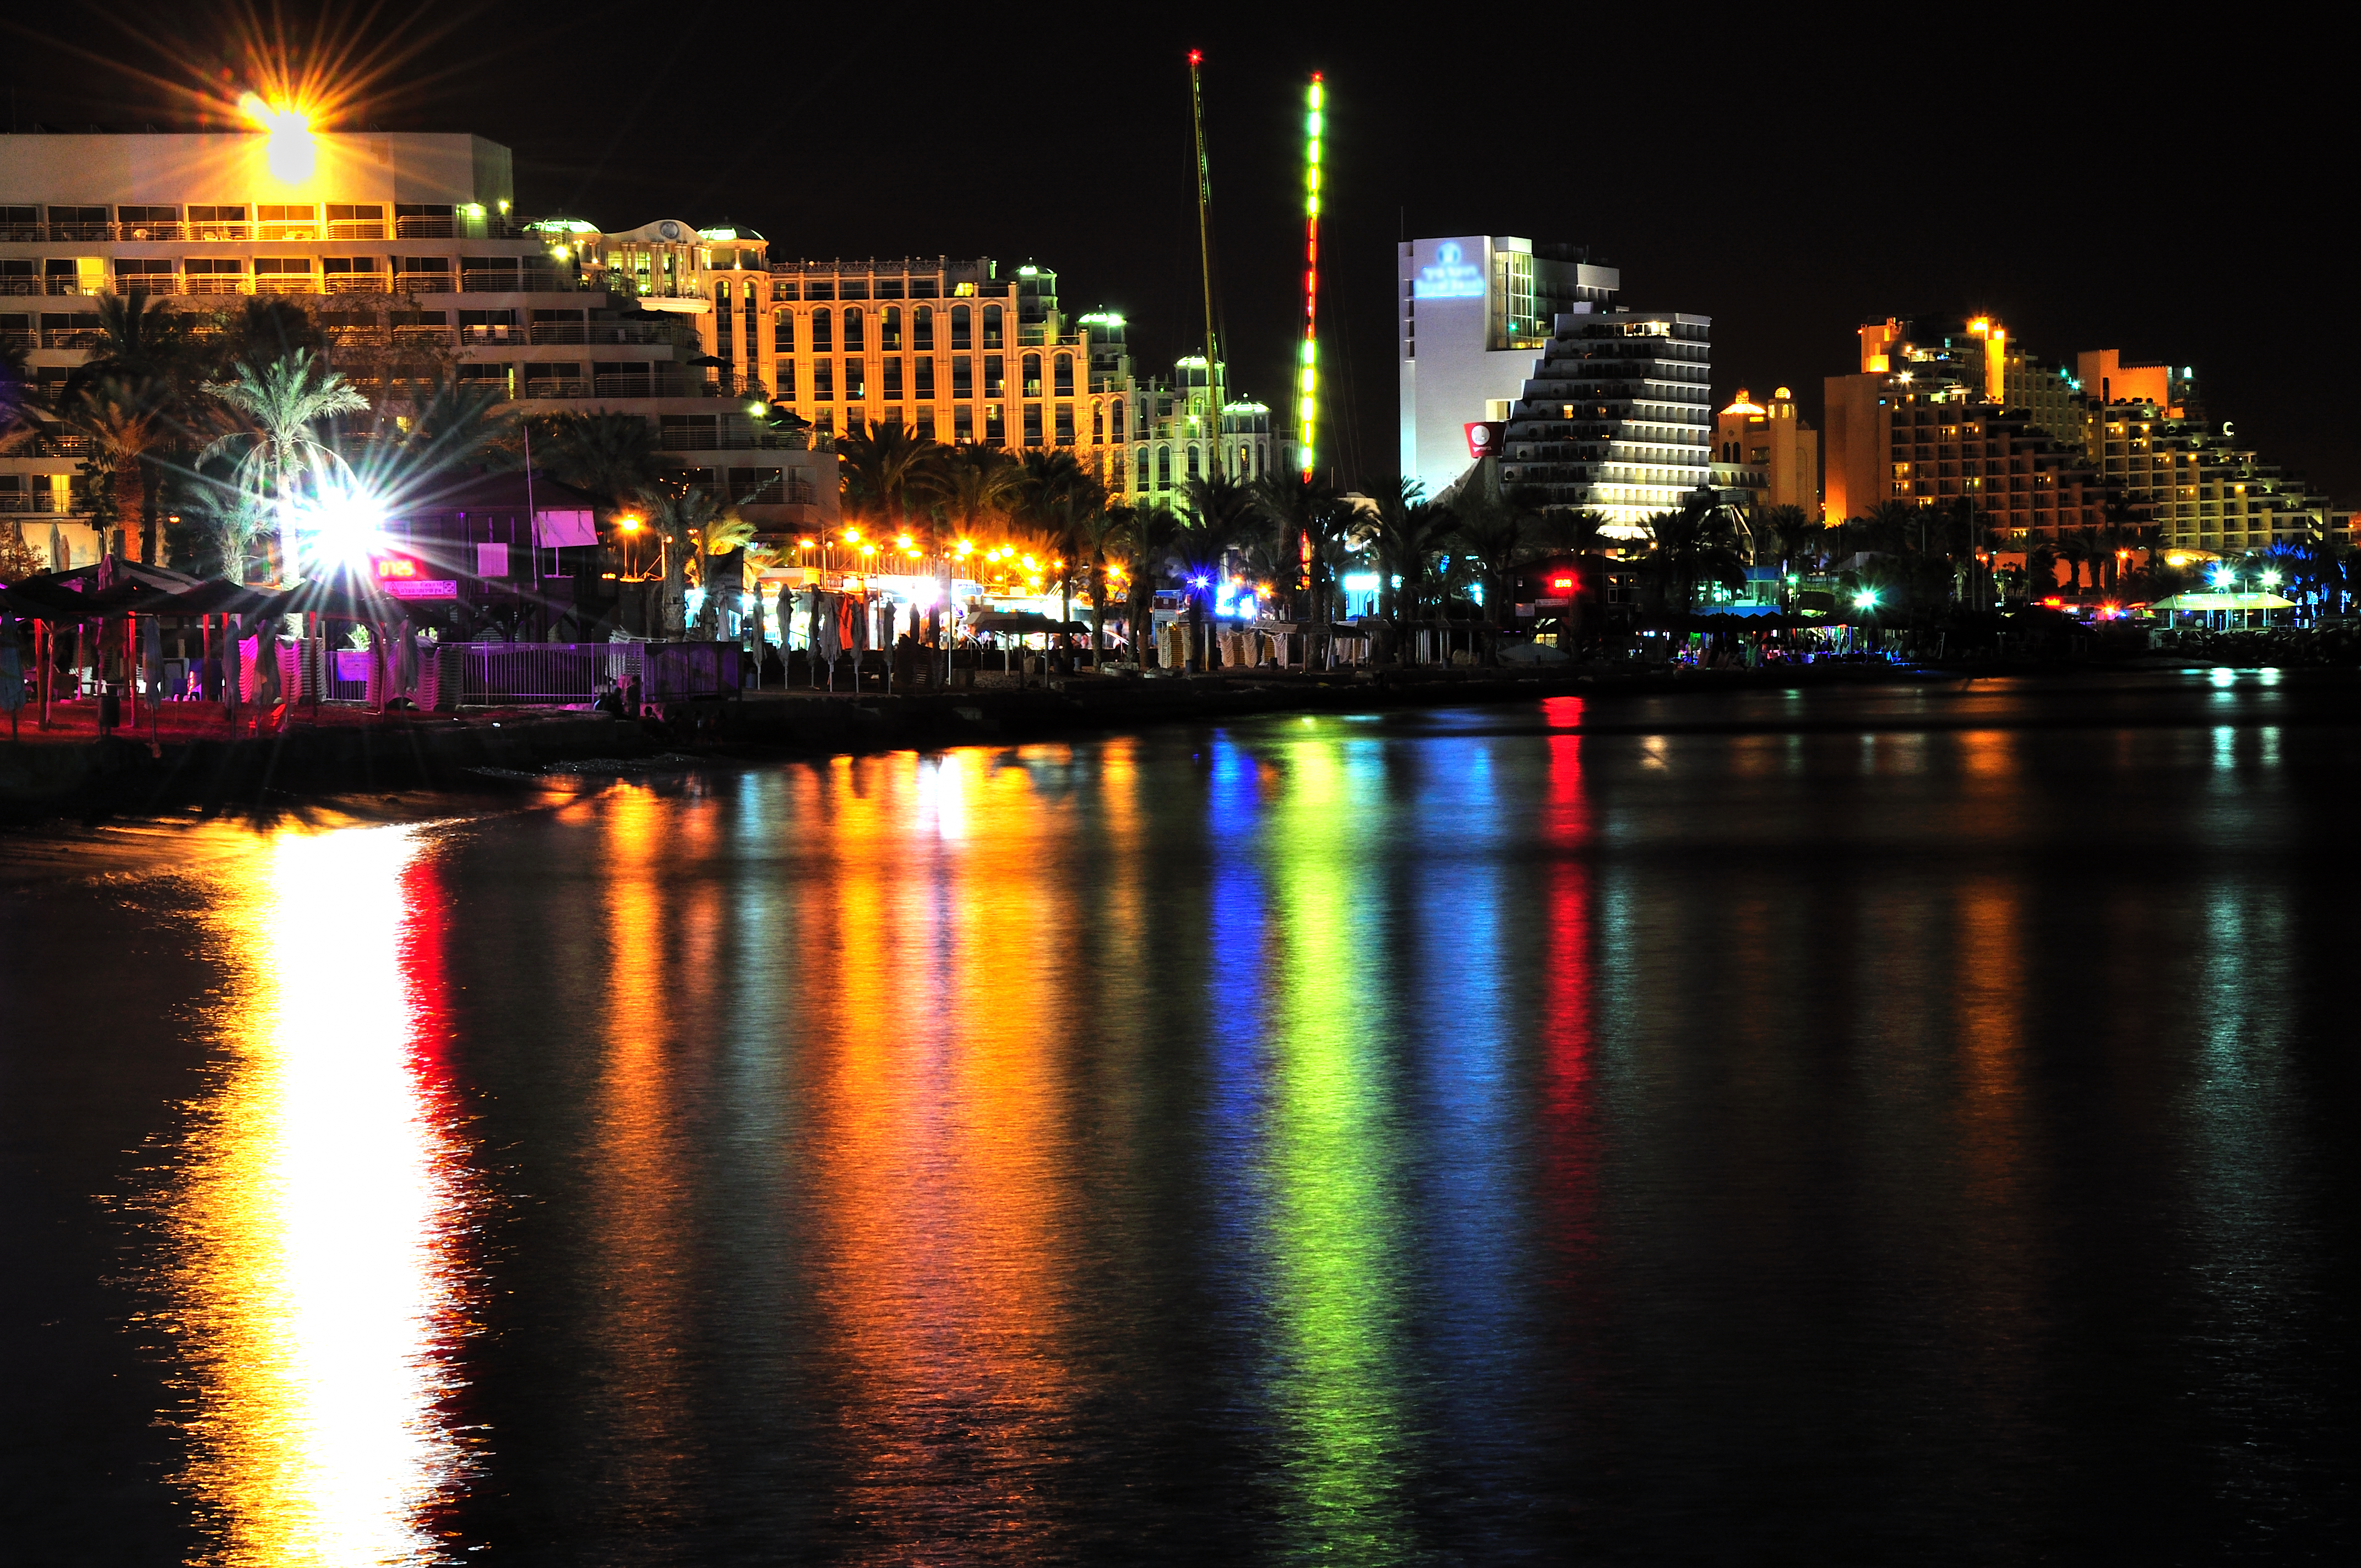 Part of Eilat coast by night. South Israel.